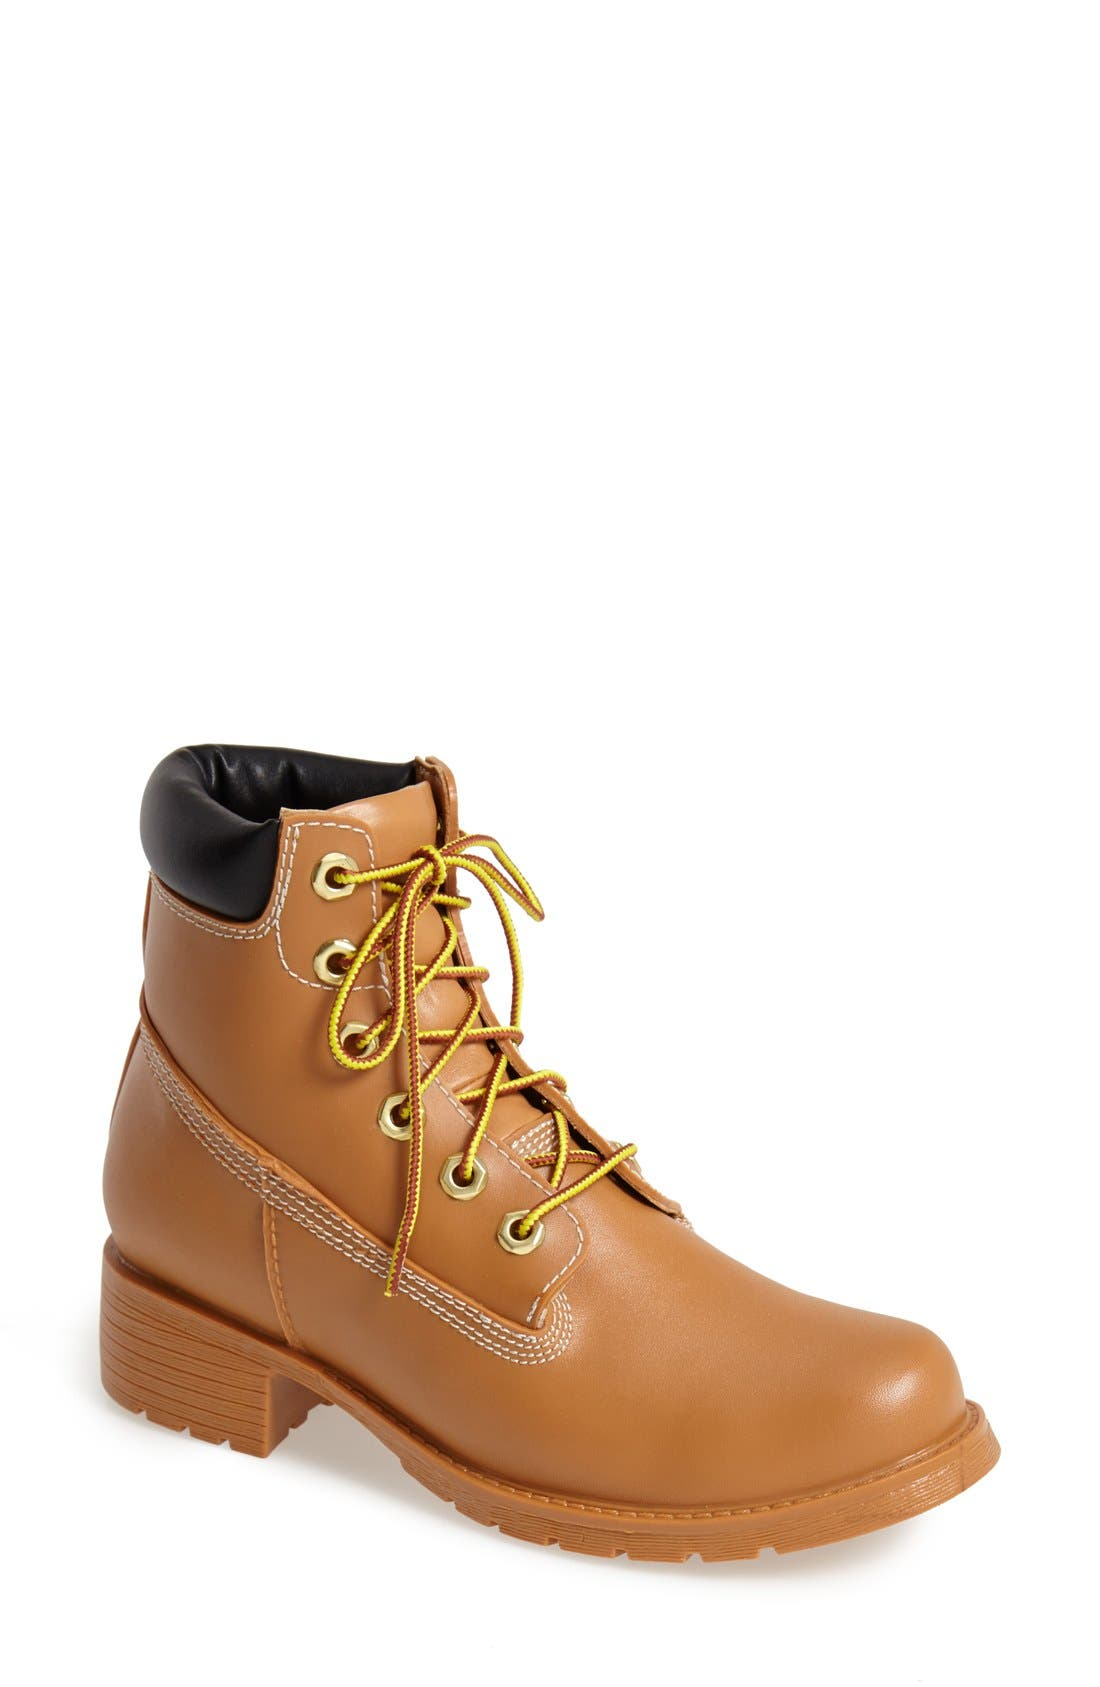 Main Image - Jeffrey Campbell 'Deluge' Water Resistant Military Boot (Women)